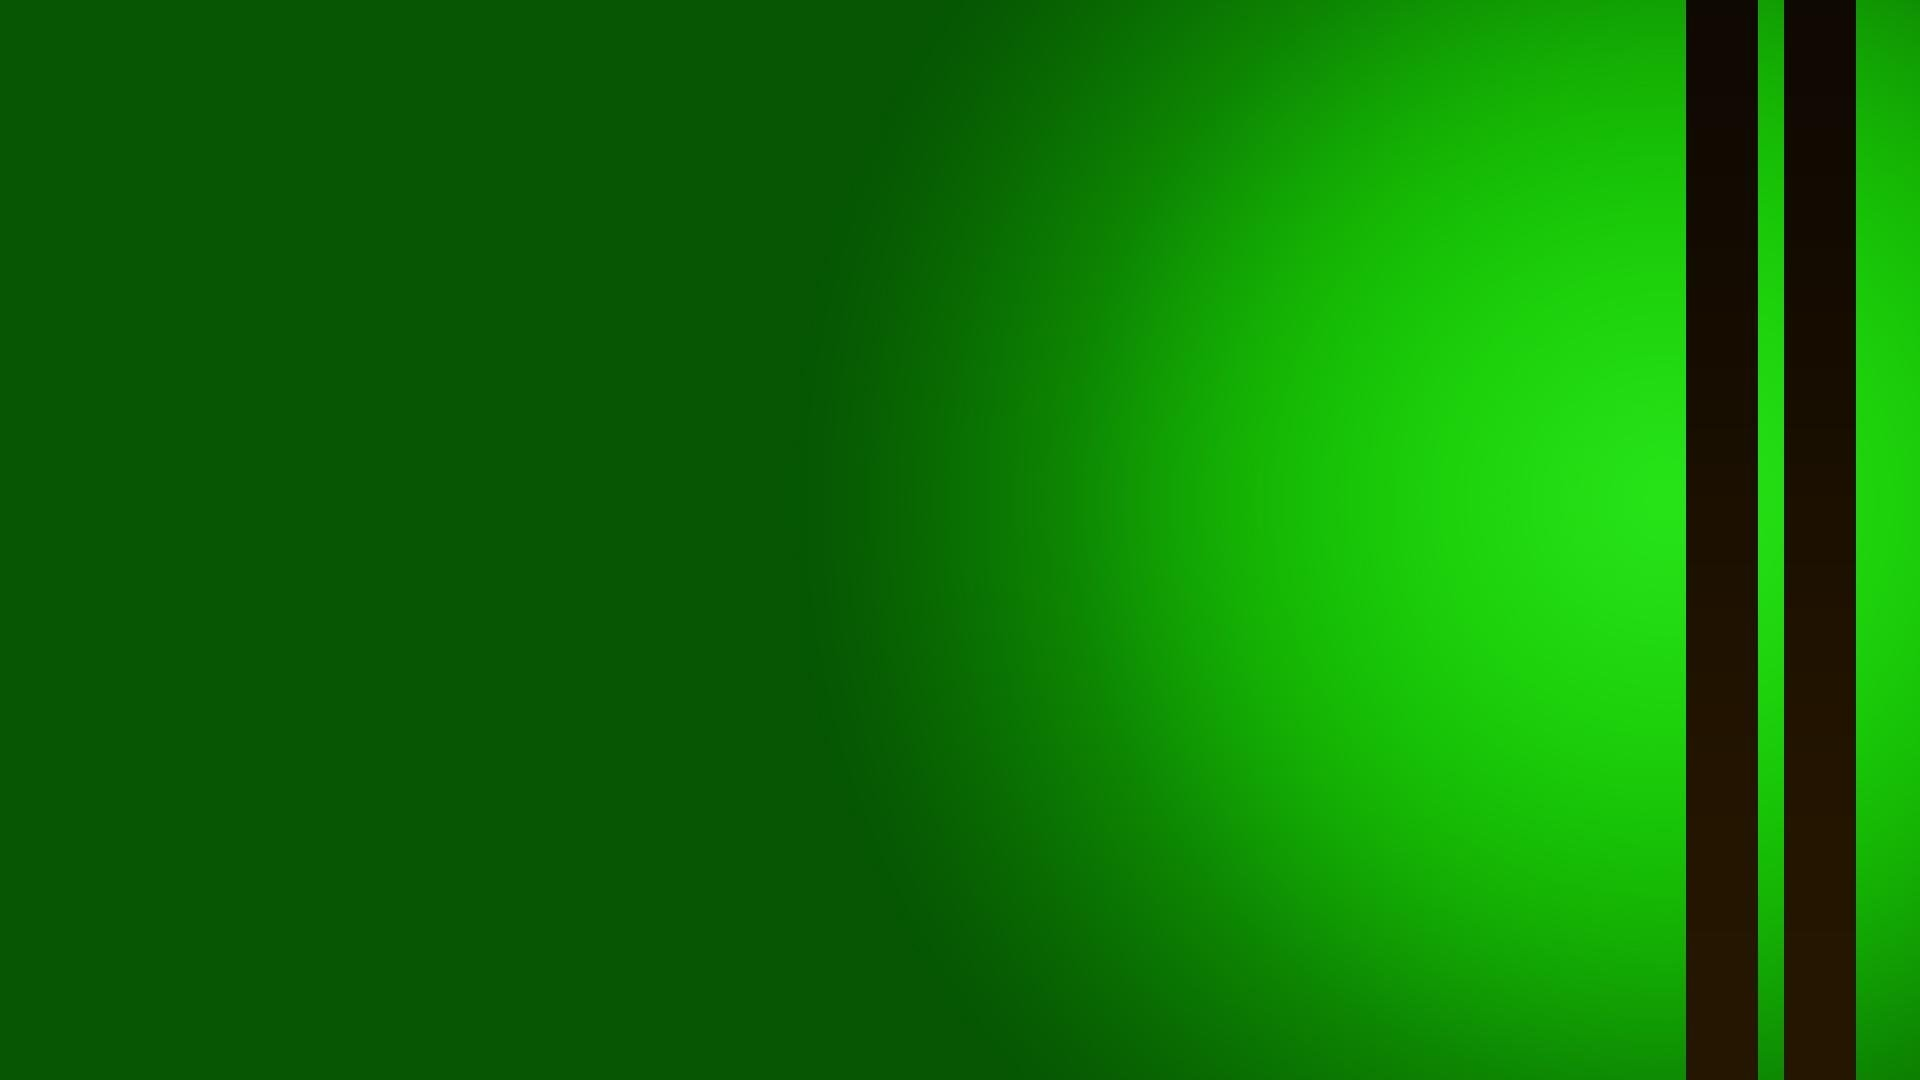 1920x1080 Plain Green Background 856788 ...